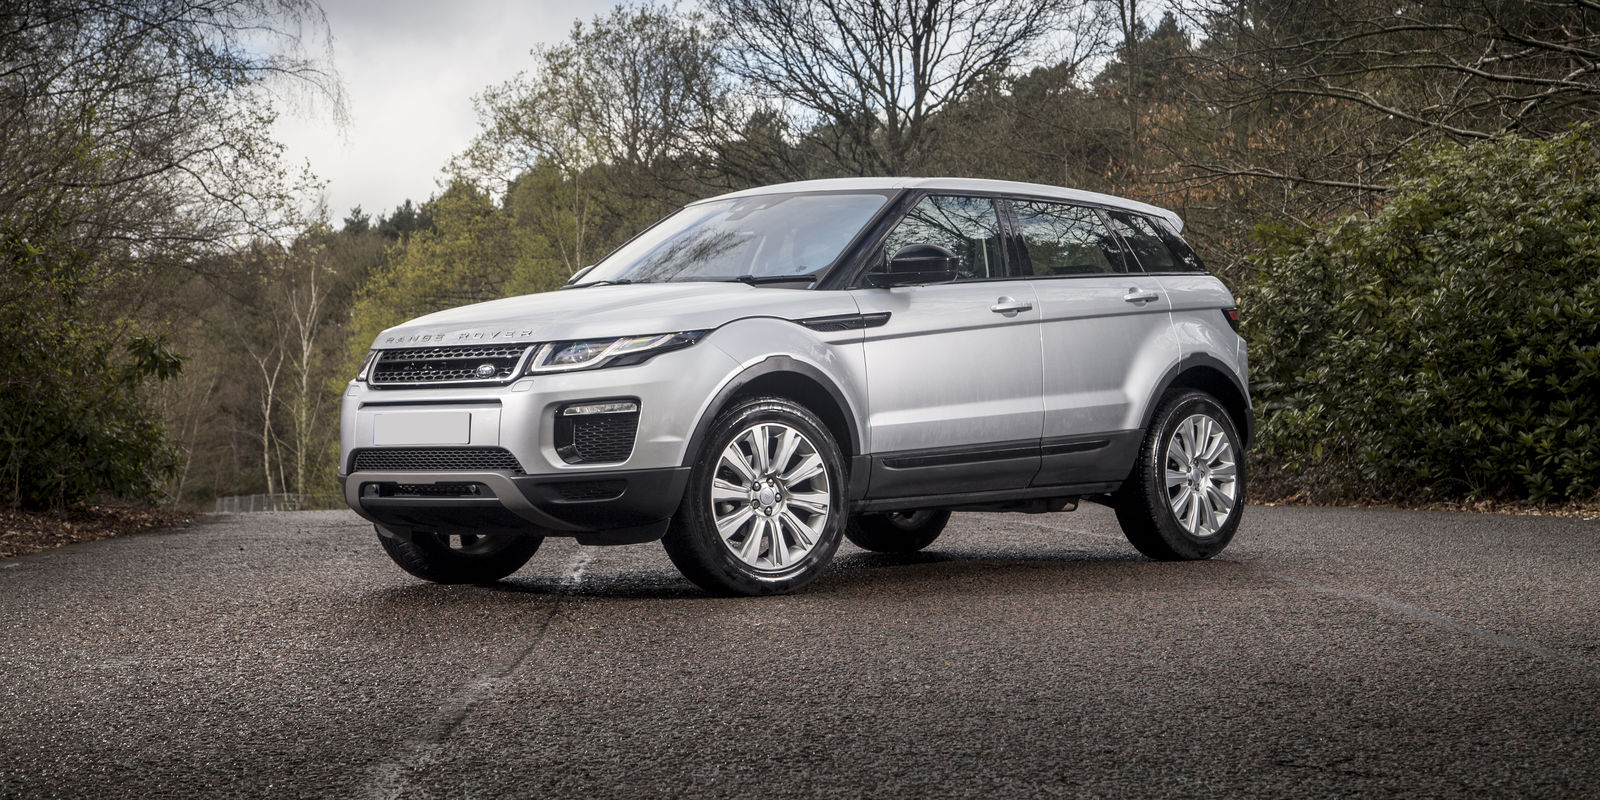 range rover evoque review deals carwow. Black Bedroom Furniture Sets. Home Design Ideas